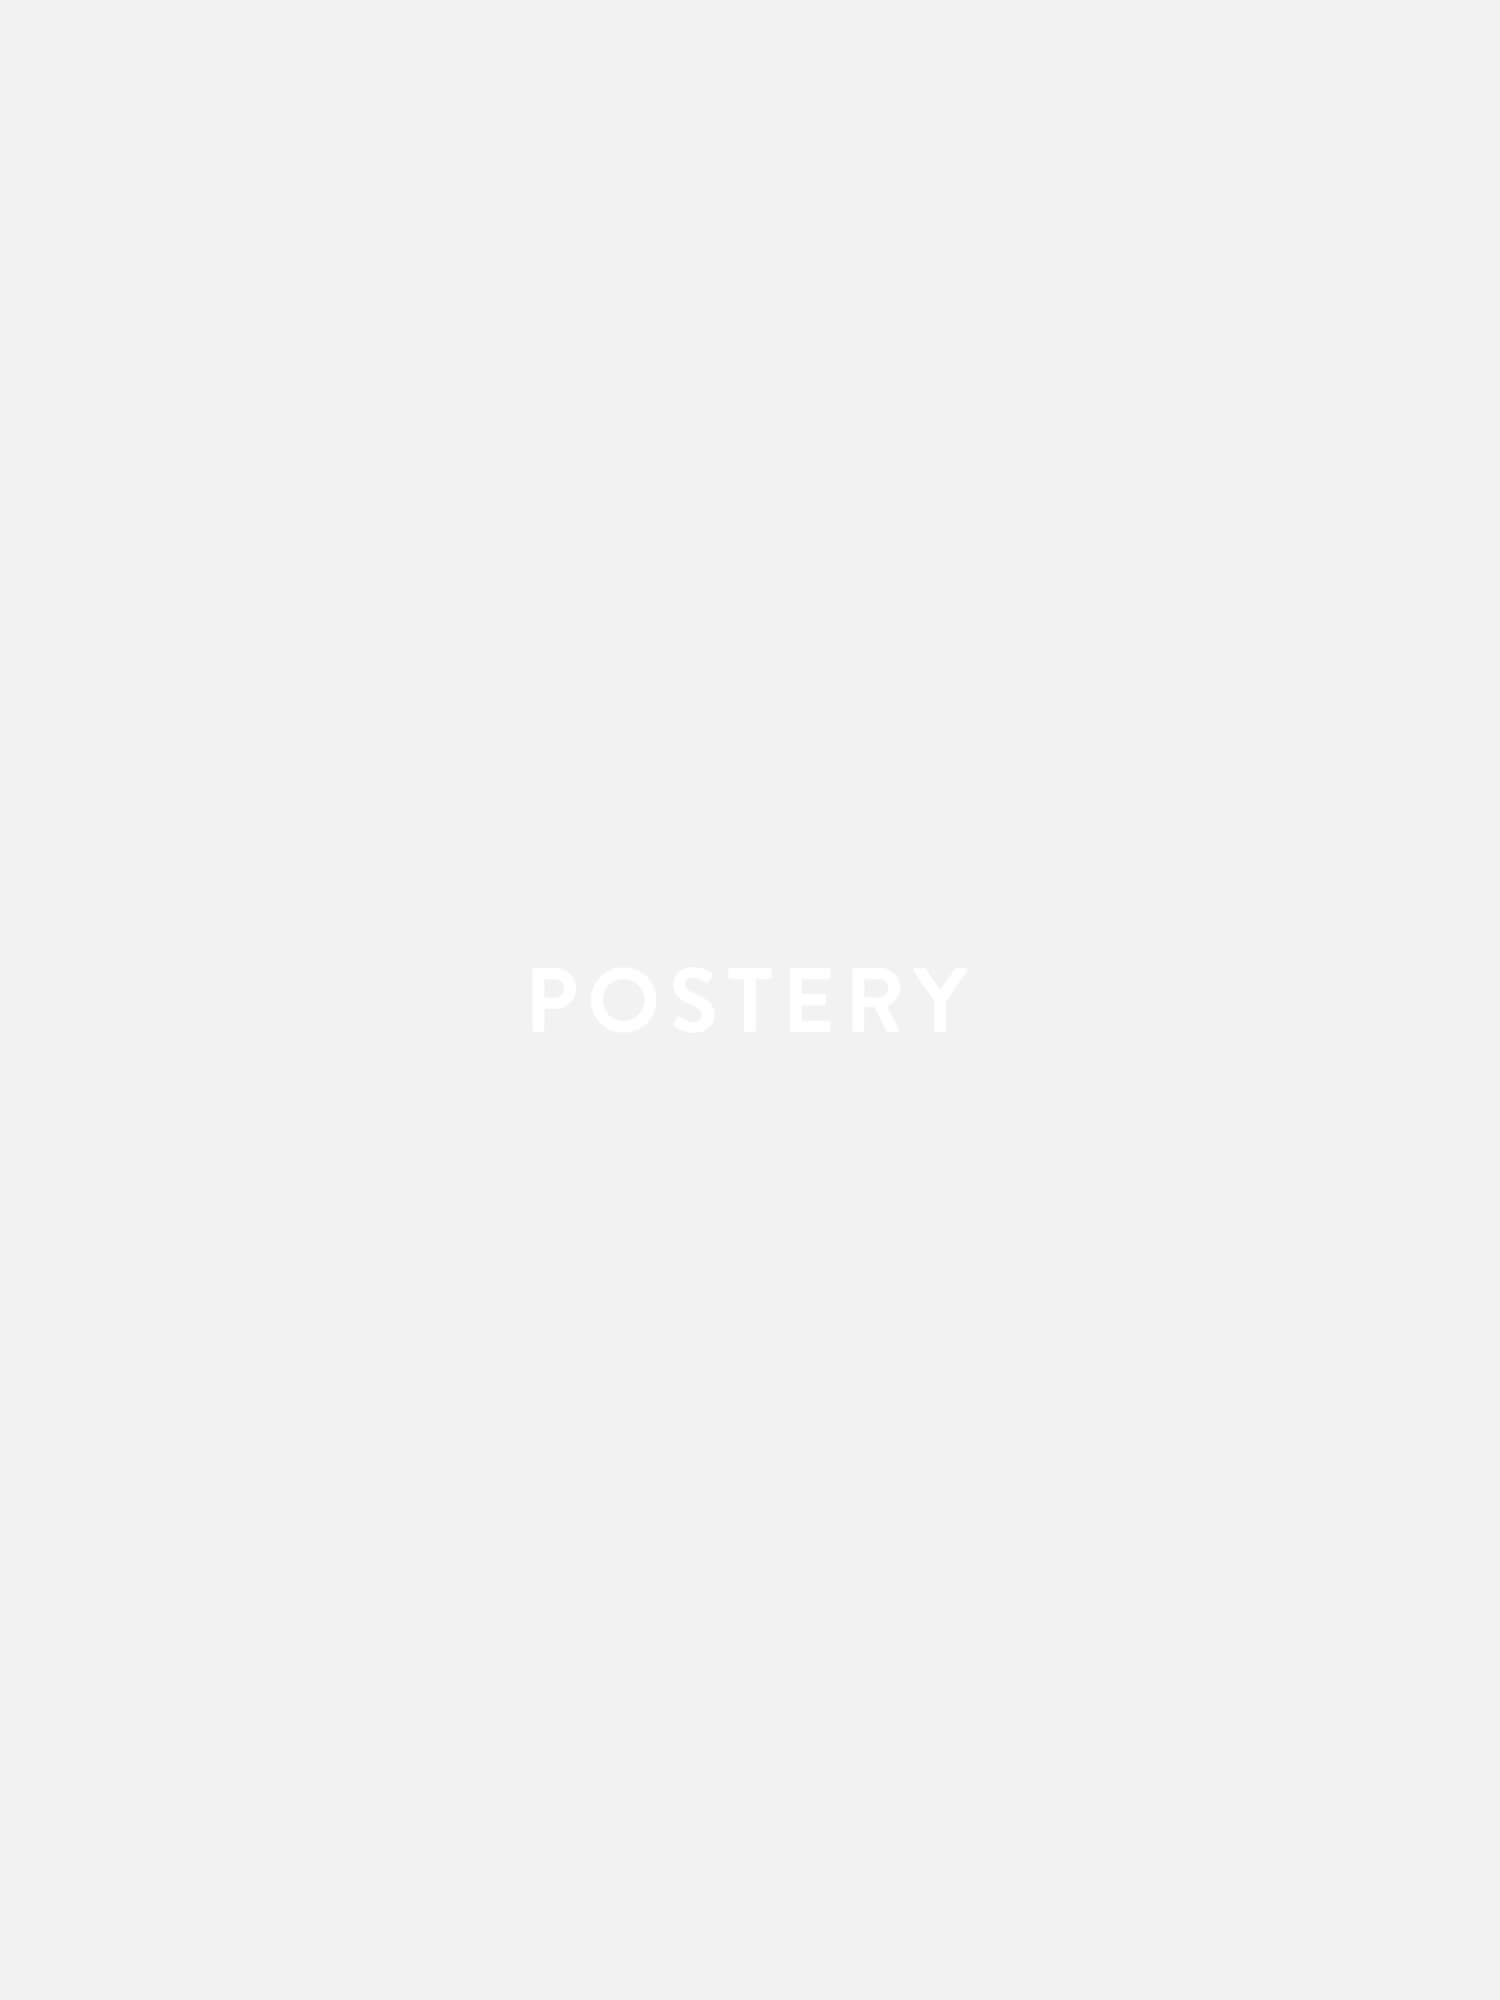 Reform Gallery Purple Poster